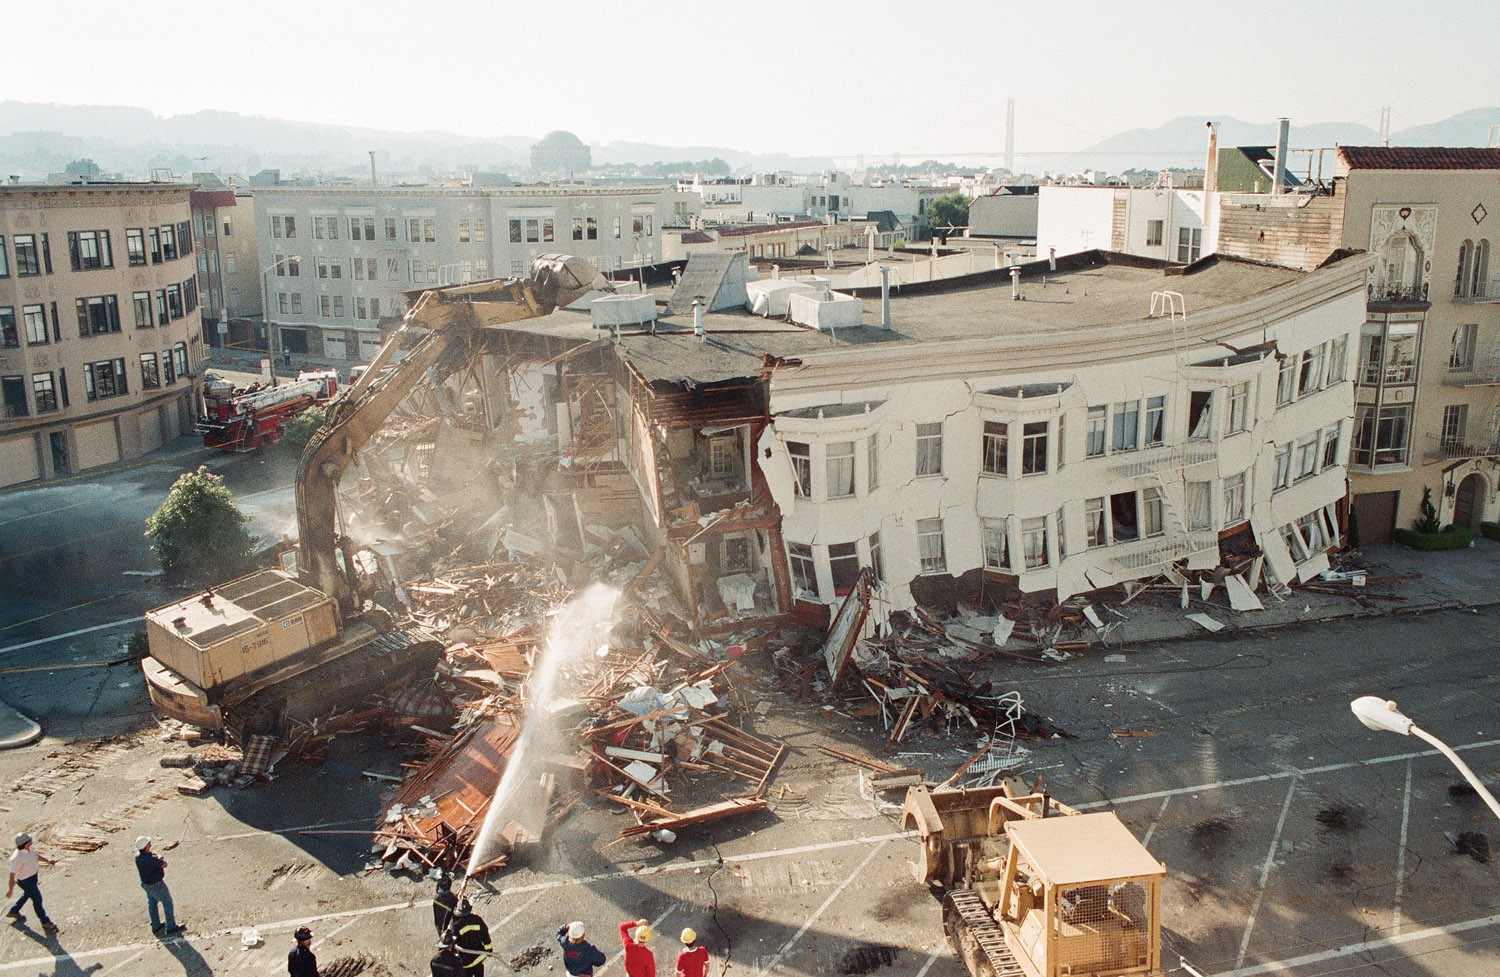 A soft story building in San Francisco which collapsed in the 1989 Loma Prieta earthquake. (Photo from: San Francisco Examiner)